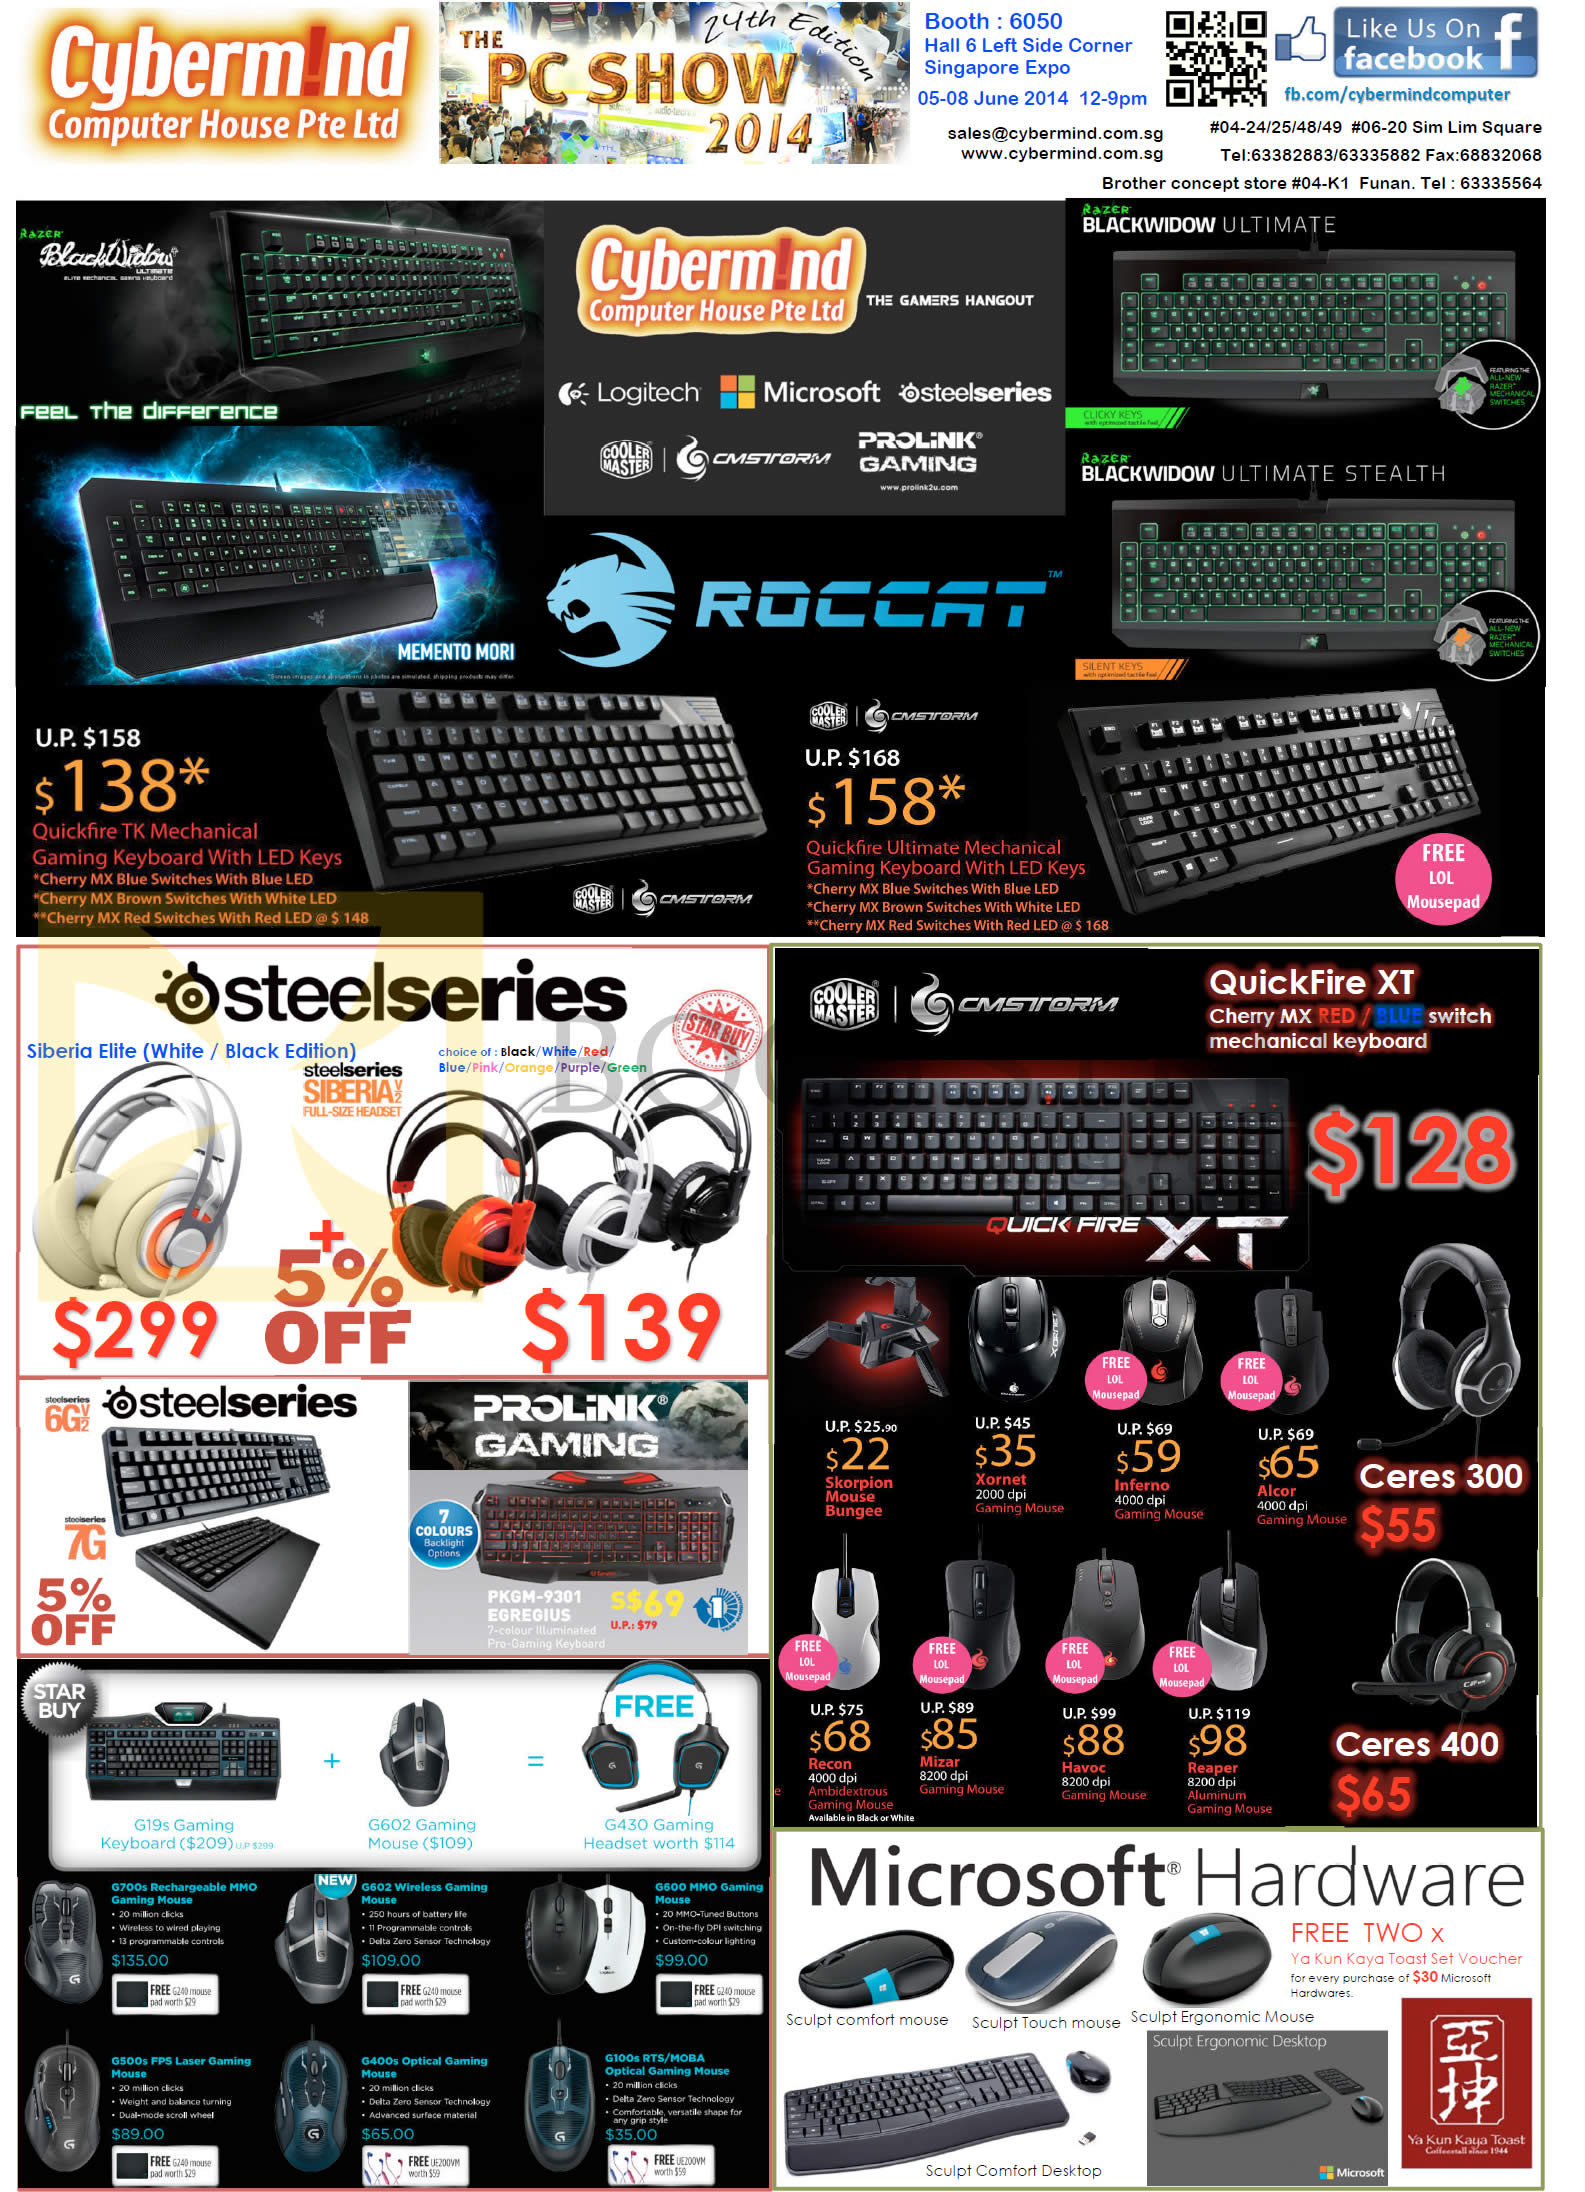 PC SHOW 2014 price list image brochure of Cybermind Keyboards, Mouse, Headsets, Microsoft, Logitech, Roccat, Steelseries, Prolink Gaming, CMStorm, Quickfire XT